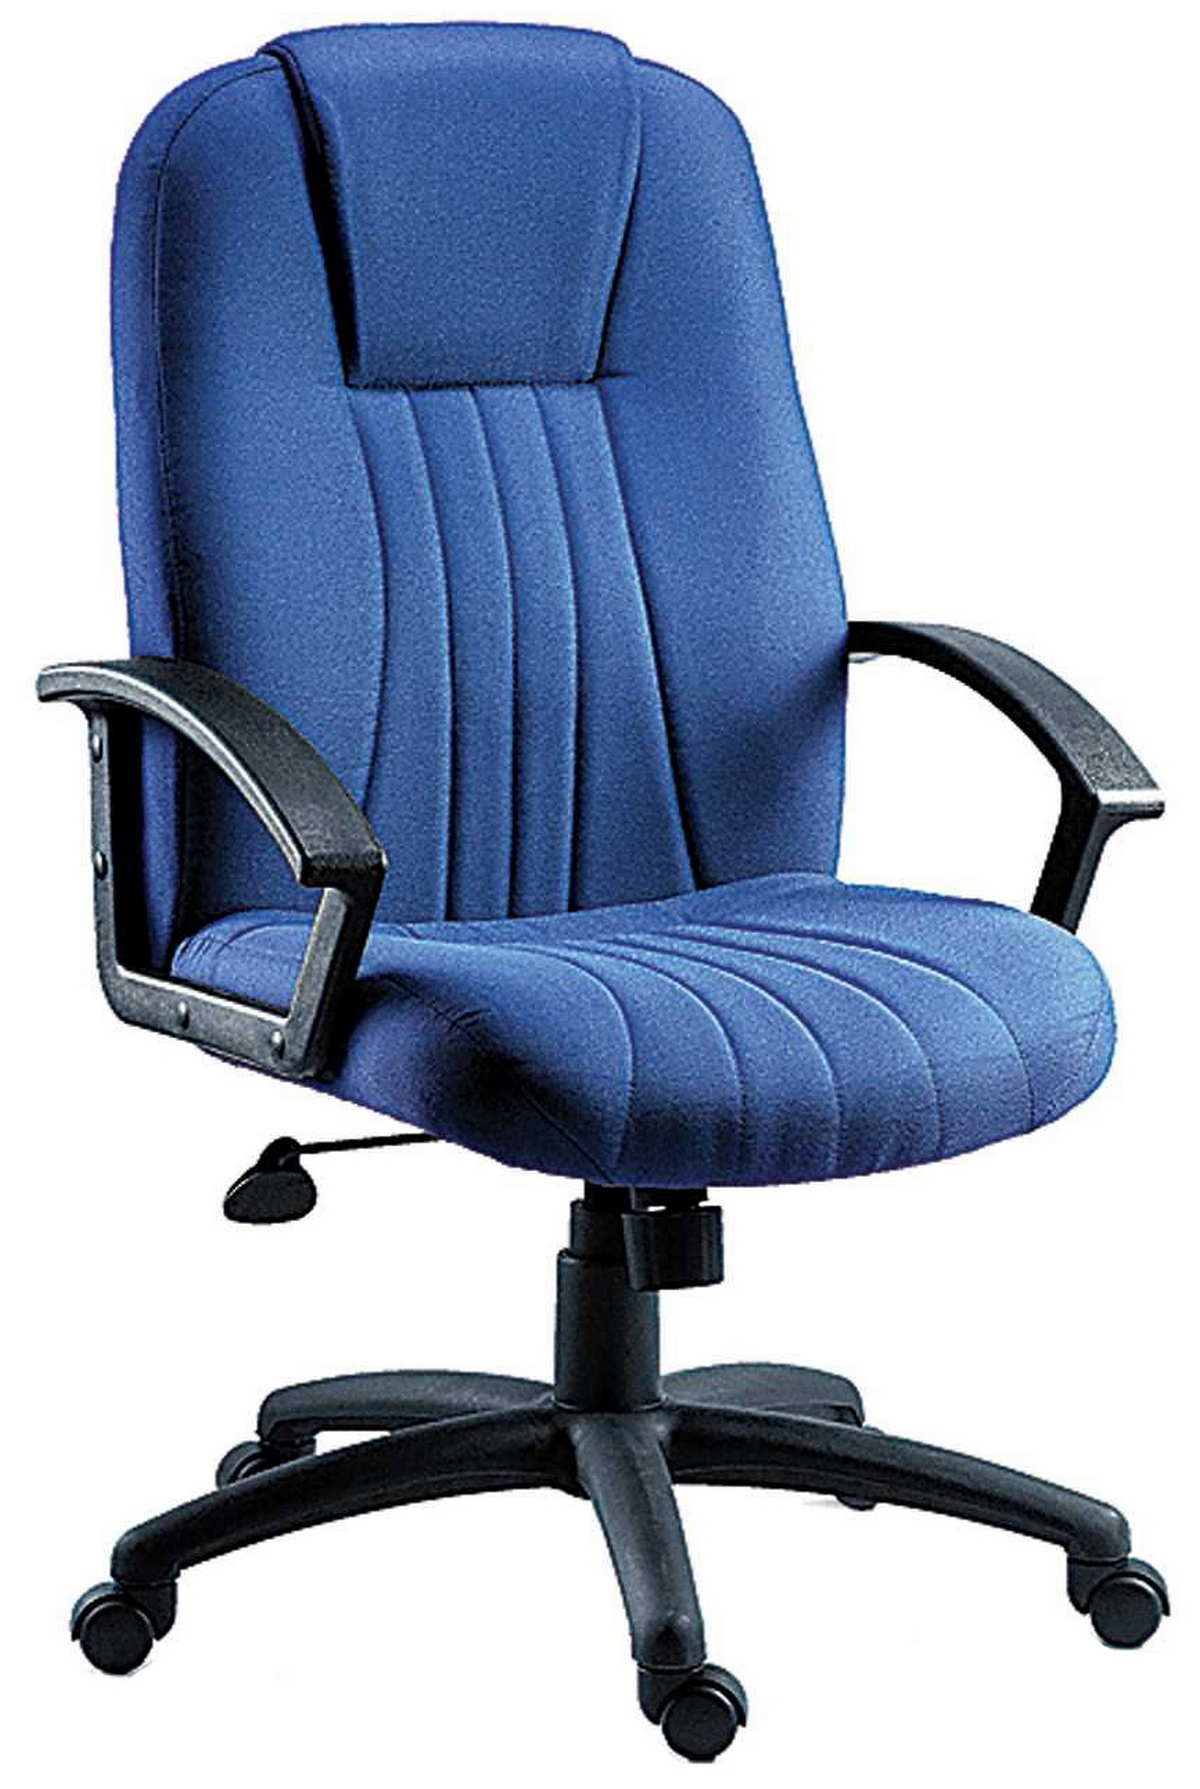 office chair covers uk spandex for rent near me city fabric executive